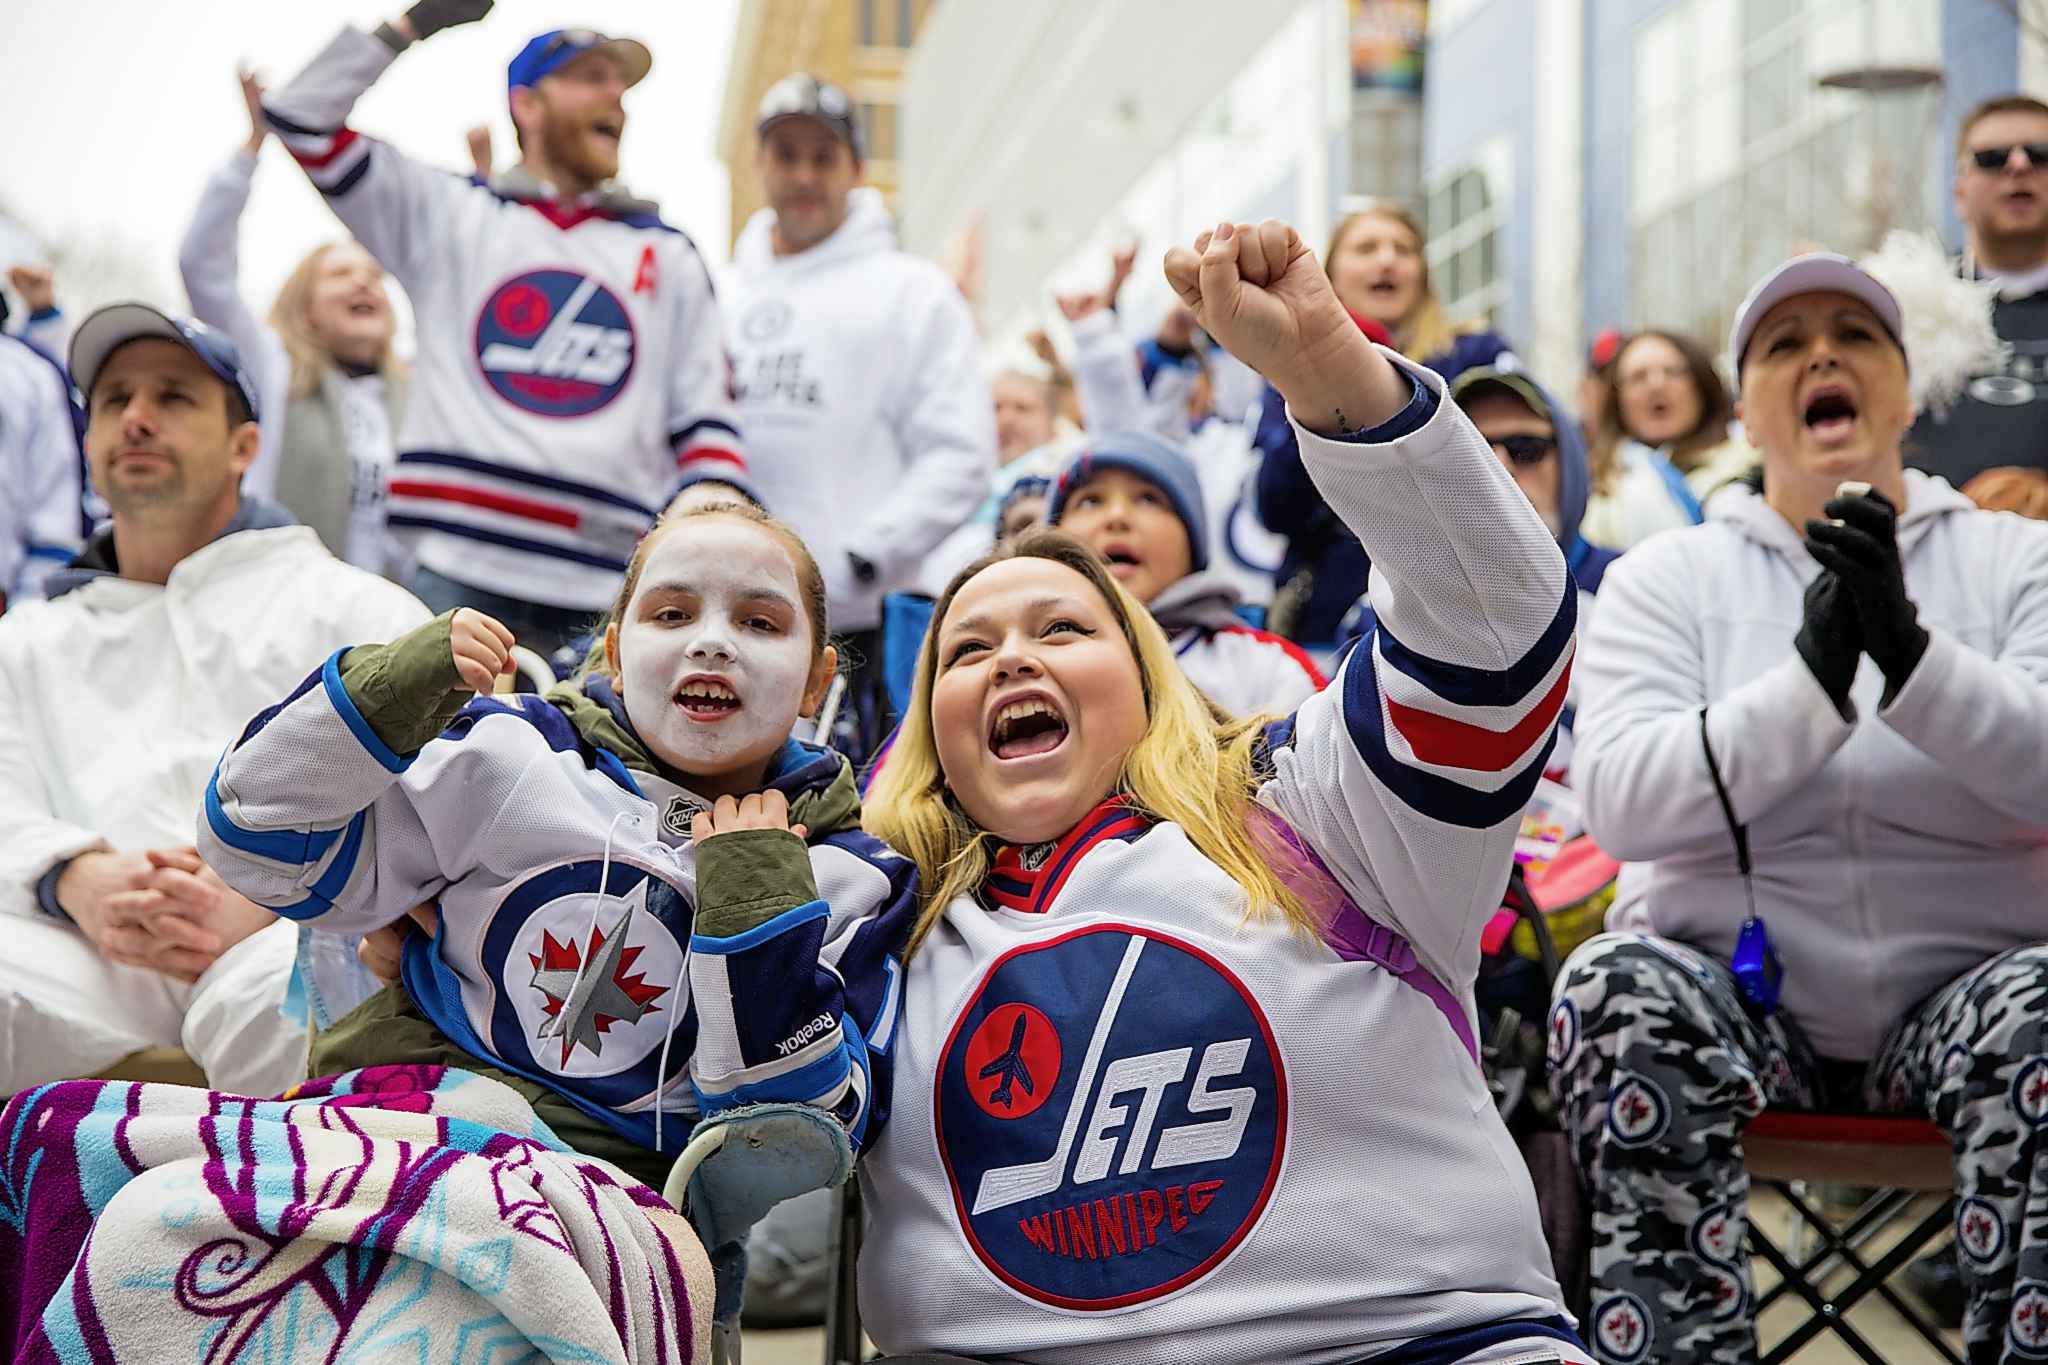 Danielle (left) and Lacey Lavallee cheer the Jets on during last year's whiteout party on Donald Street. (Mikaela MacKenzie / Winnipeg Free Press files)